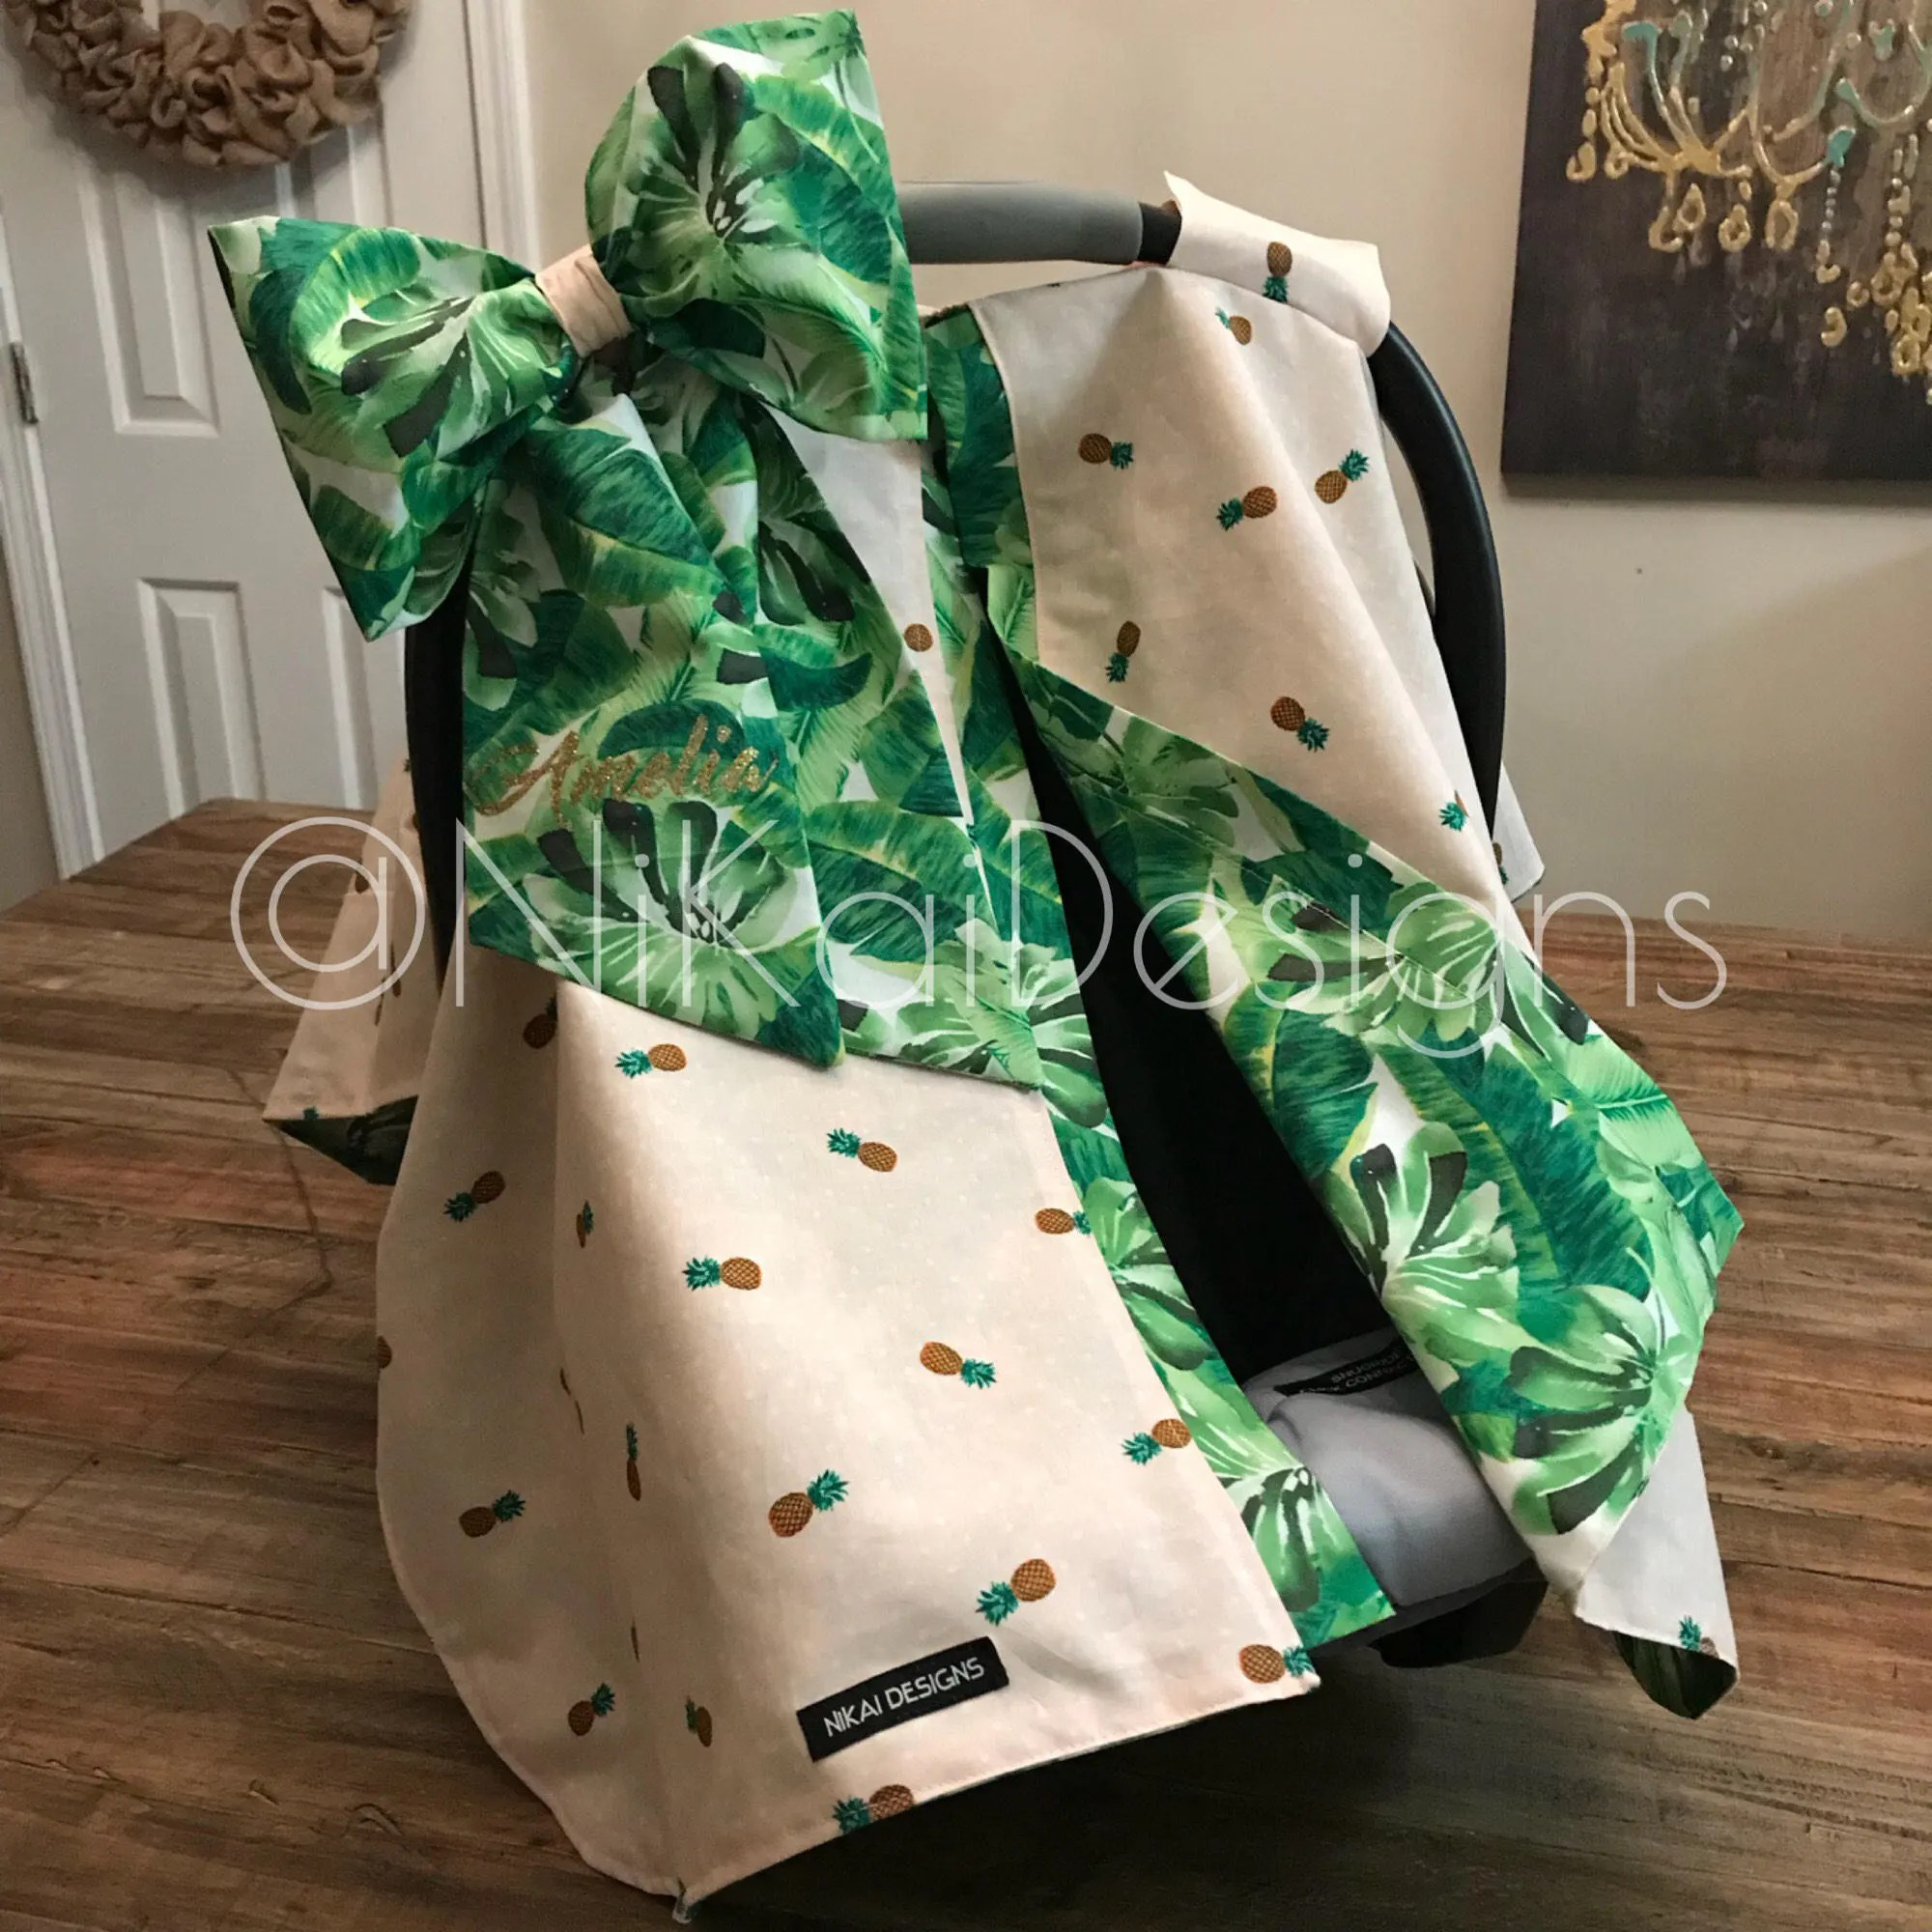 Infant Carrier Military Carseat Canopy Car Seat Cover Blanket Tent Carrier Cover Baby Infant Carrier Cover Personalized W Bow Hawaiian Tropical Pineapple Leaves